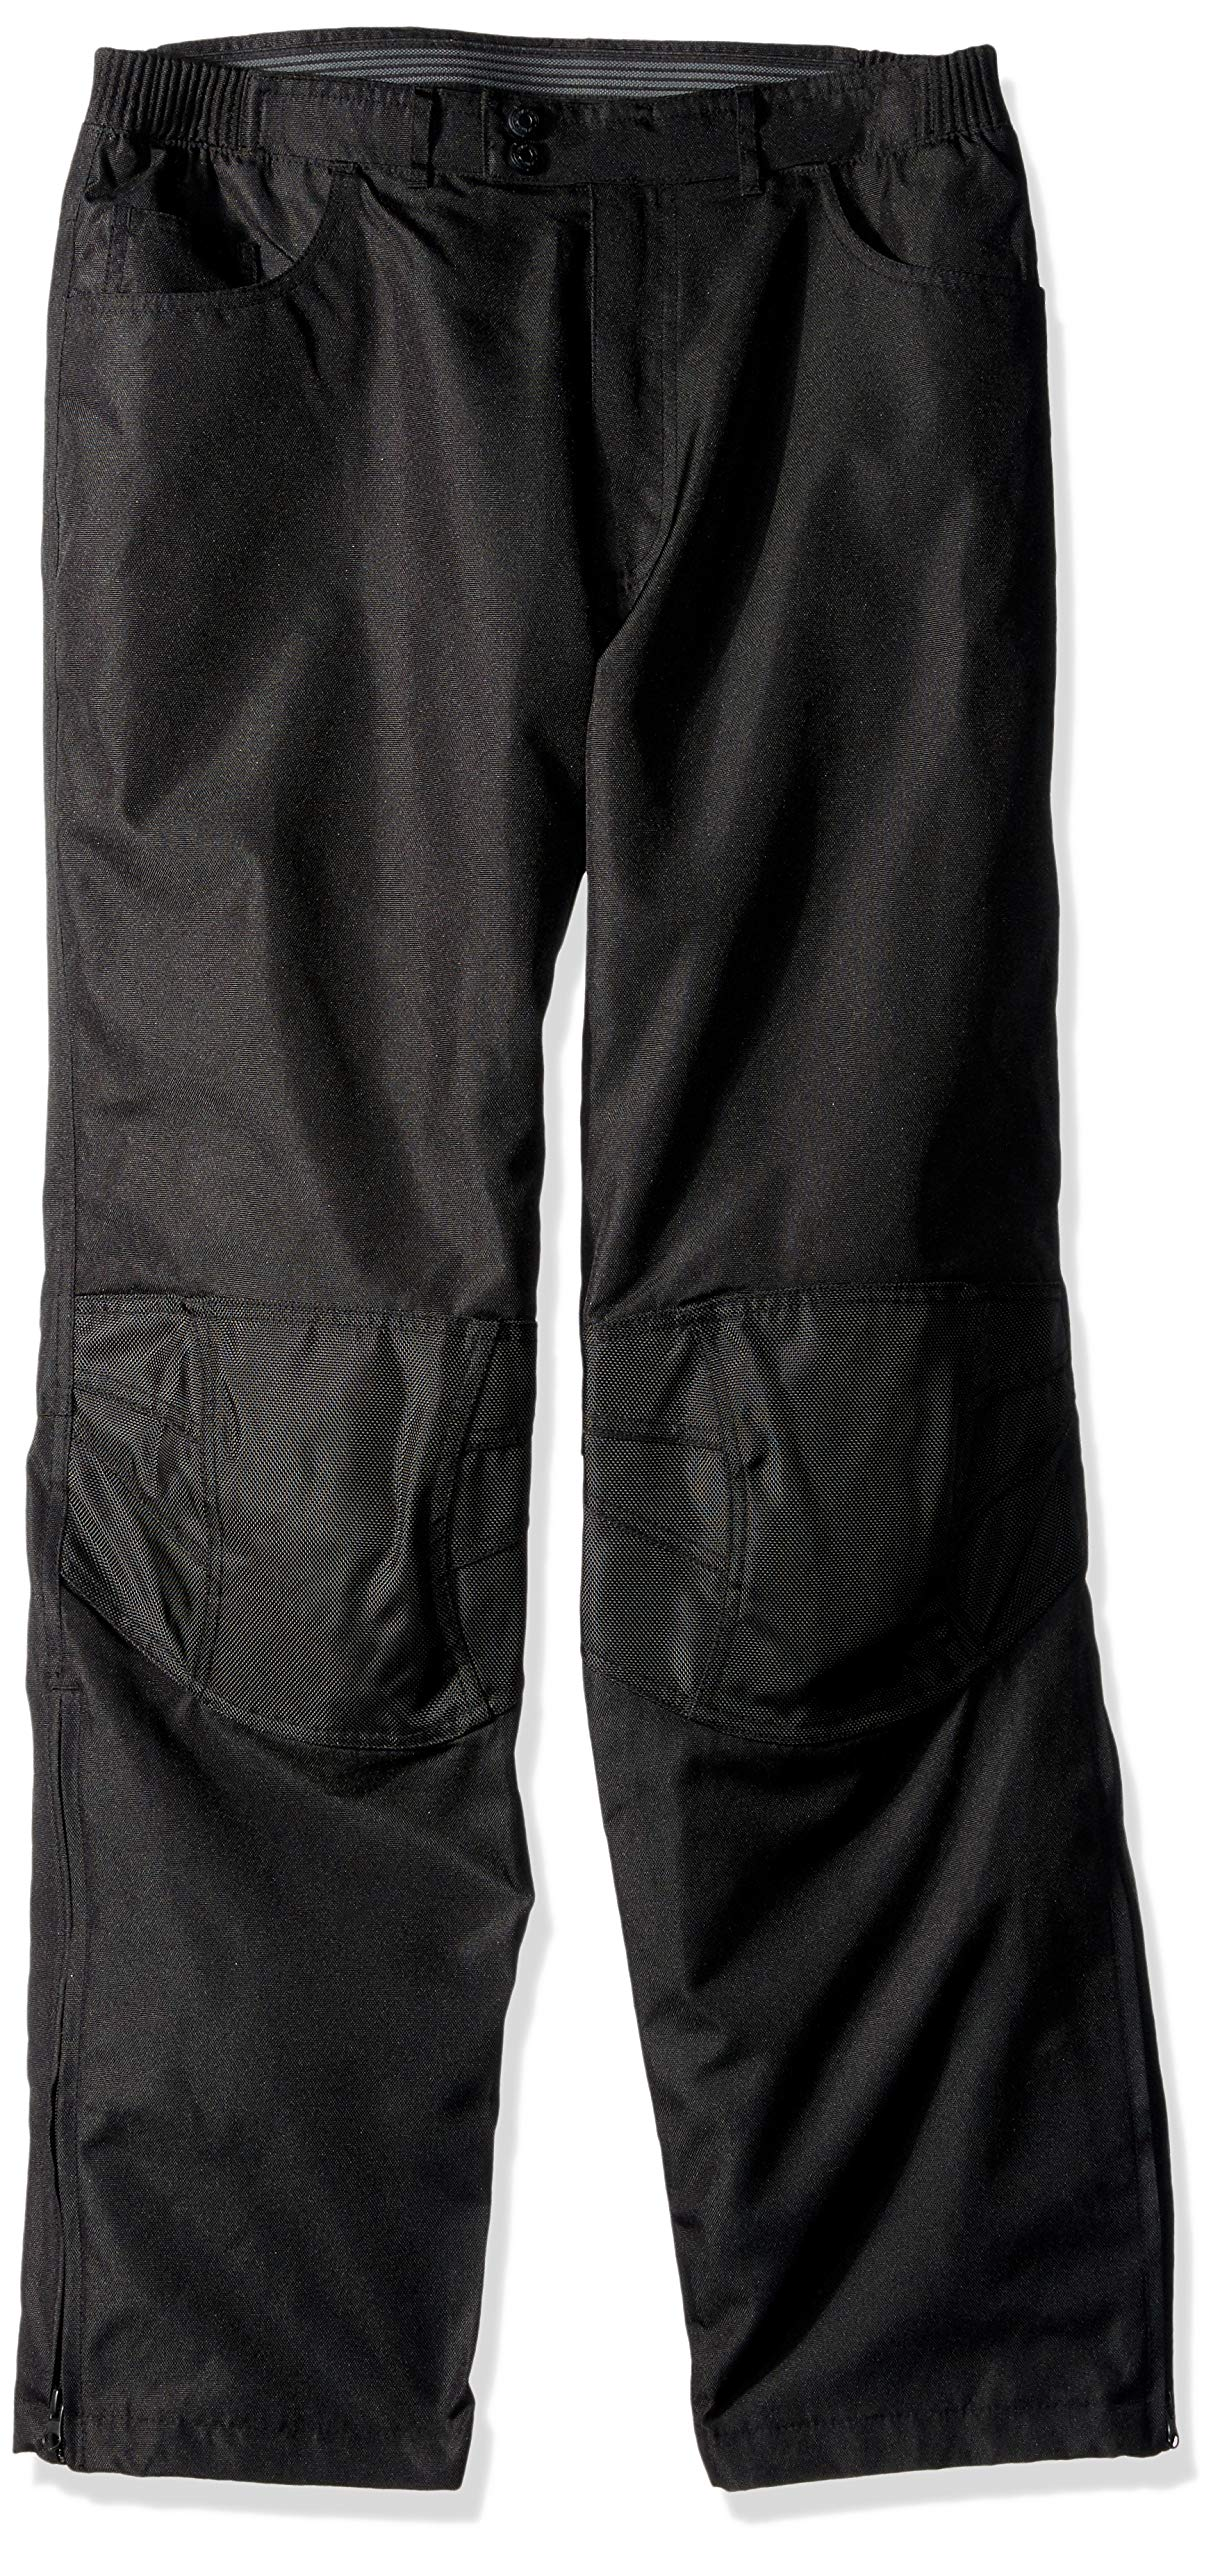 TourMaster 8730-0205-05 Men's Quest Pants (Black, Medium)